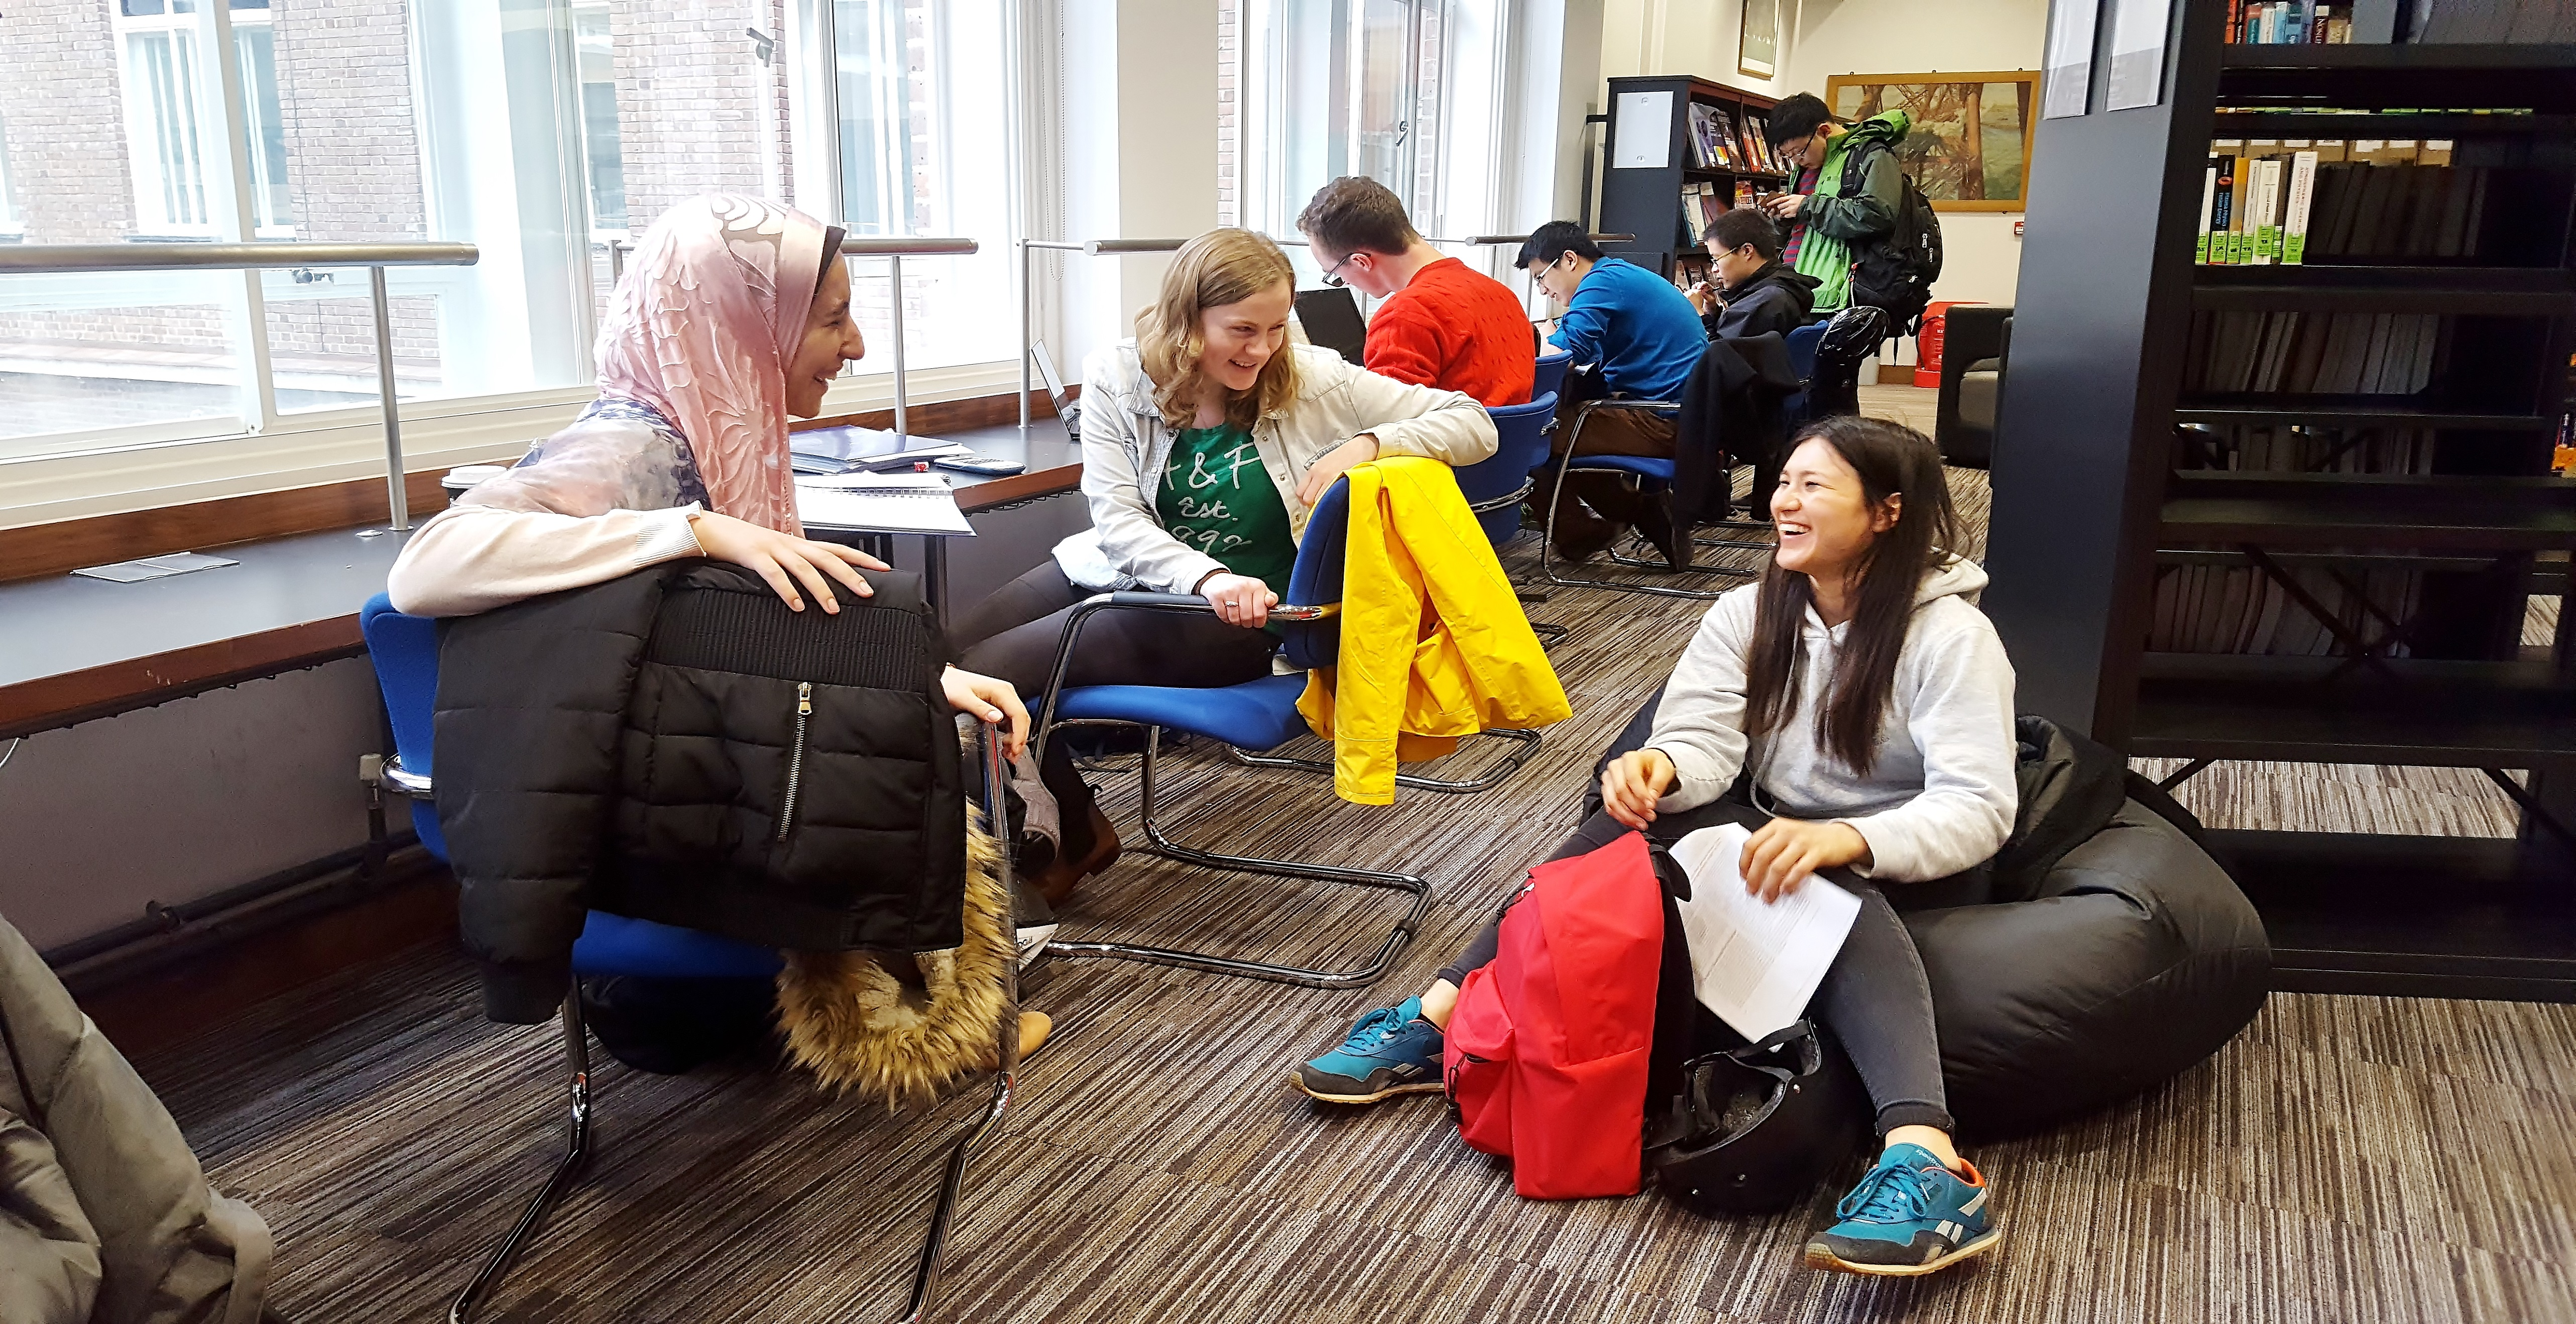 Students chatting in the library